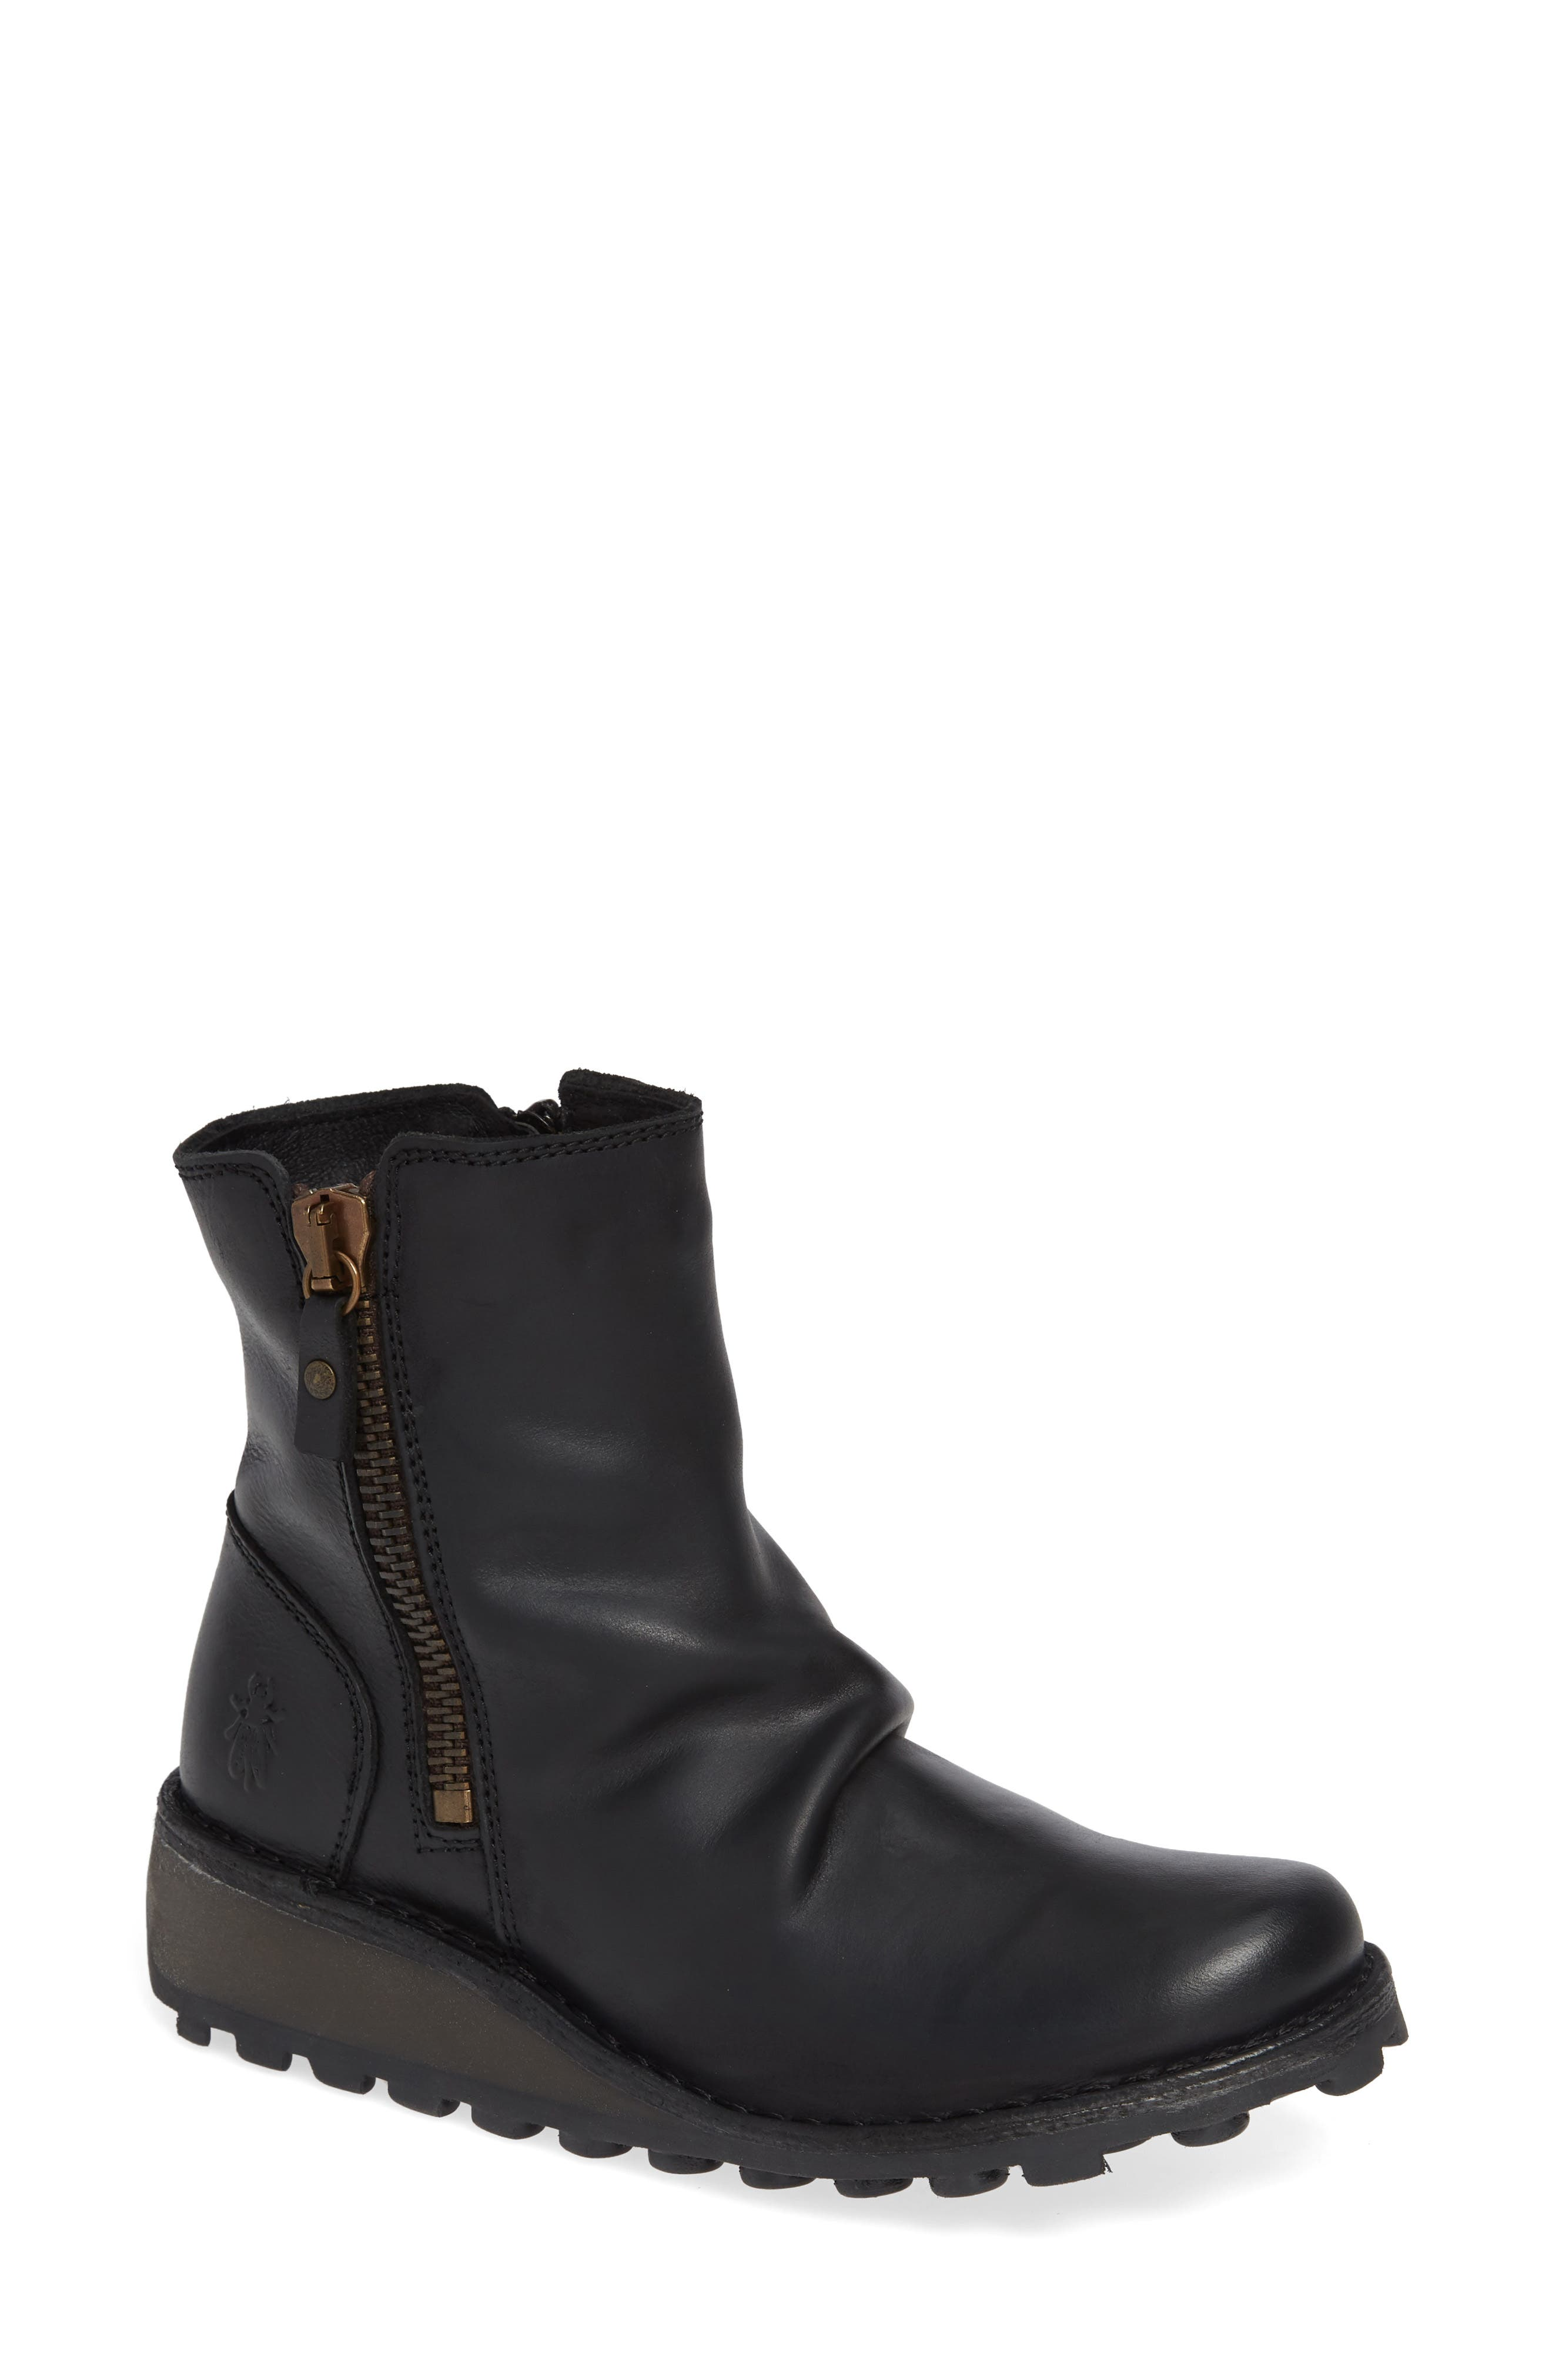 Mong Boot,                             Main thumbnail 1, color,                             Black Leather